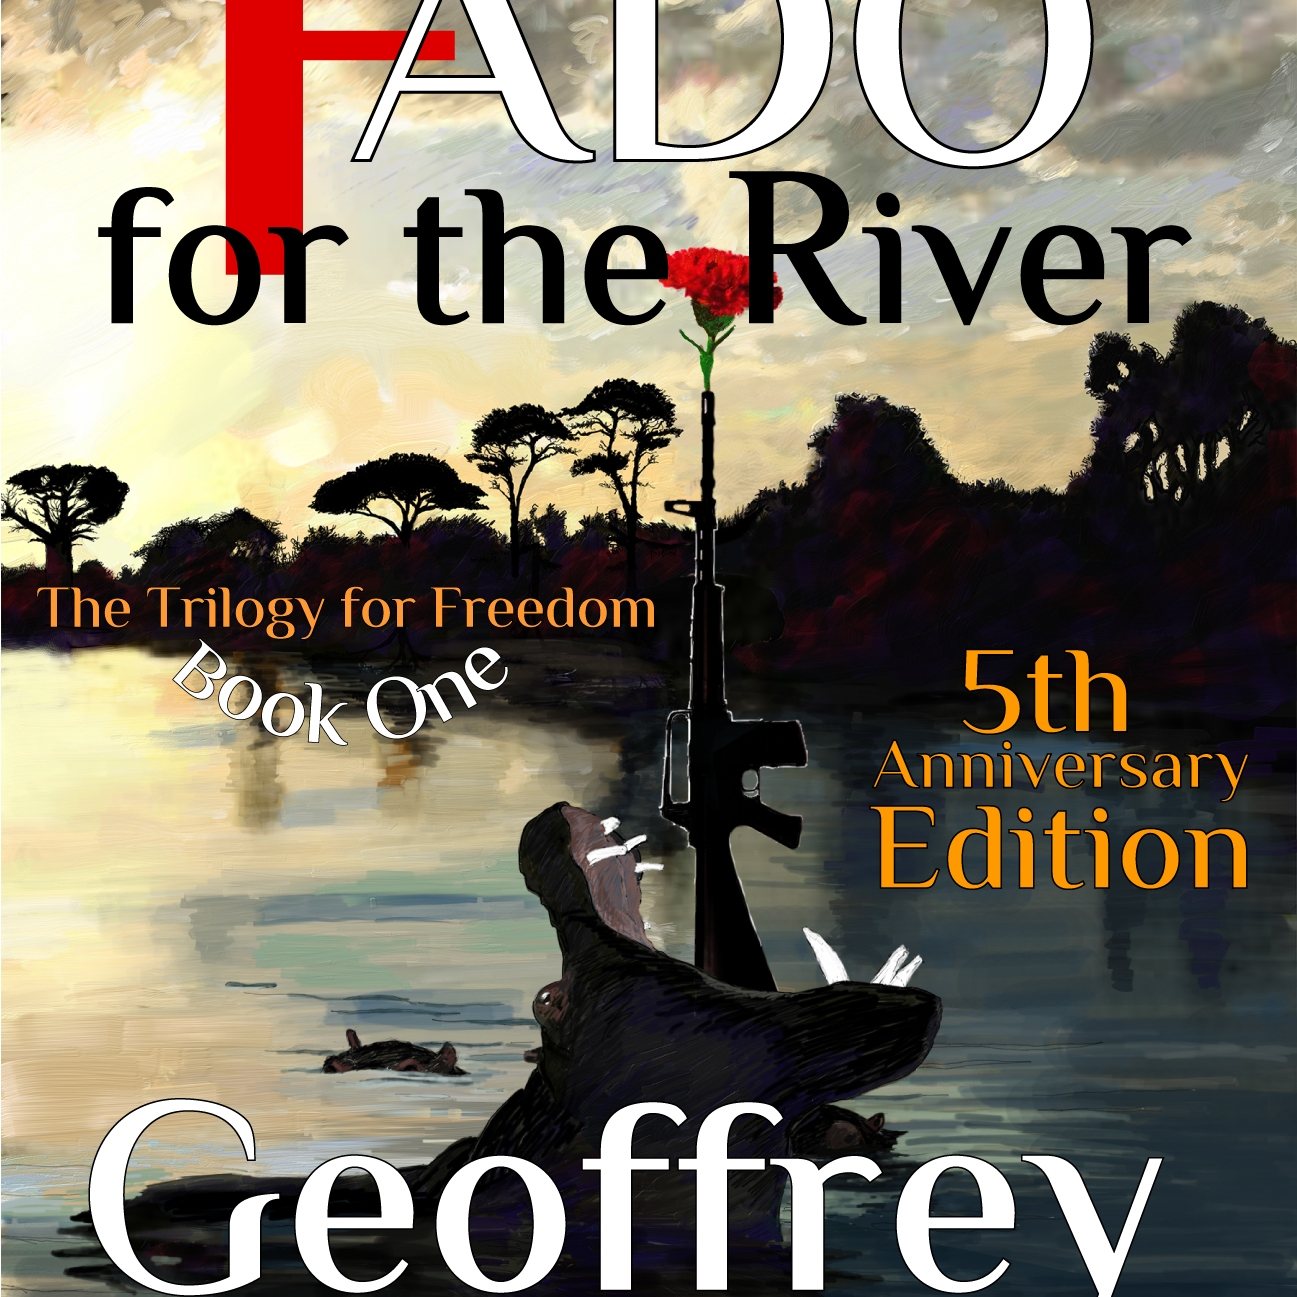 A FADO FOR THE RIVER COVER ILLUSTRATION - A HIPPO WITH A GUN WITH A CARNATION IN IT COMING OUT OF IT'S MOUTH IN THE LIMPOPO RIVER IN MOZAMBIQUE